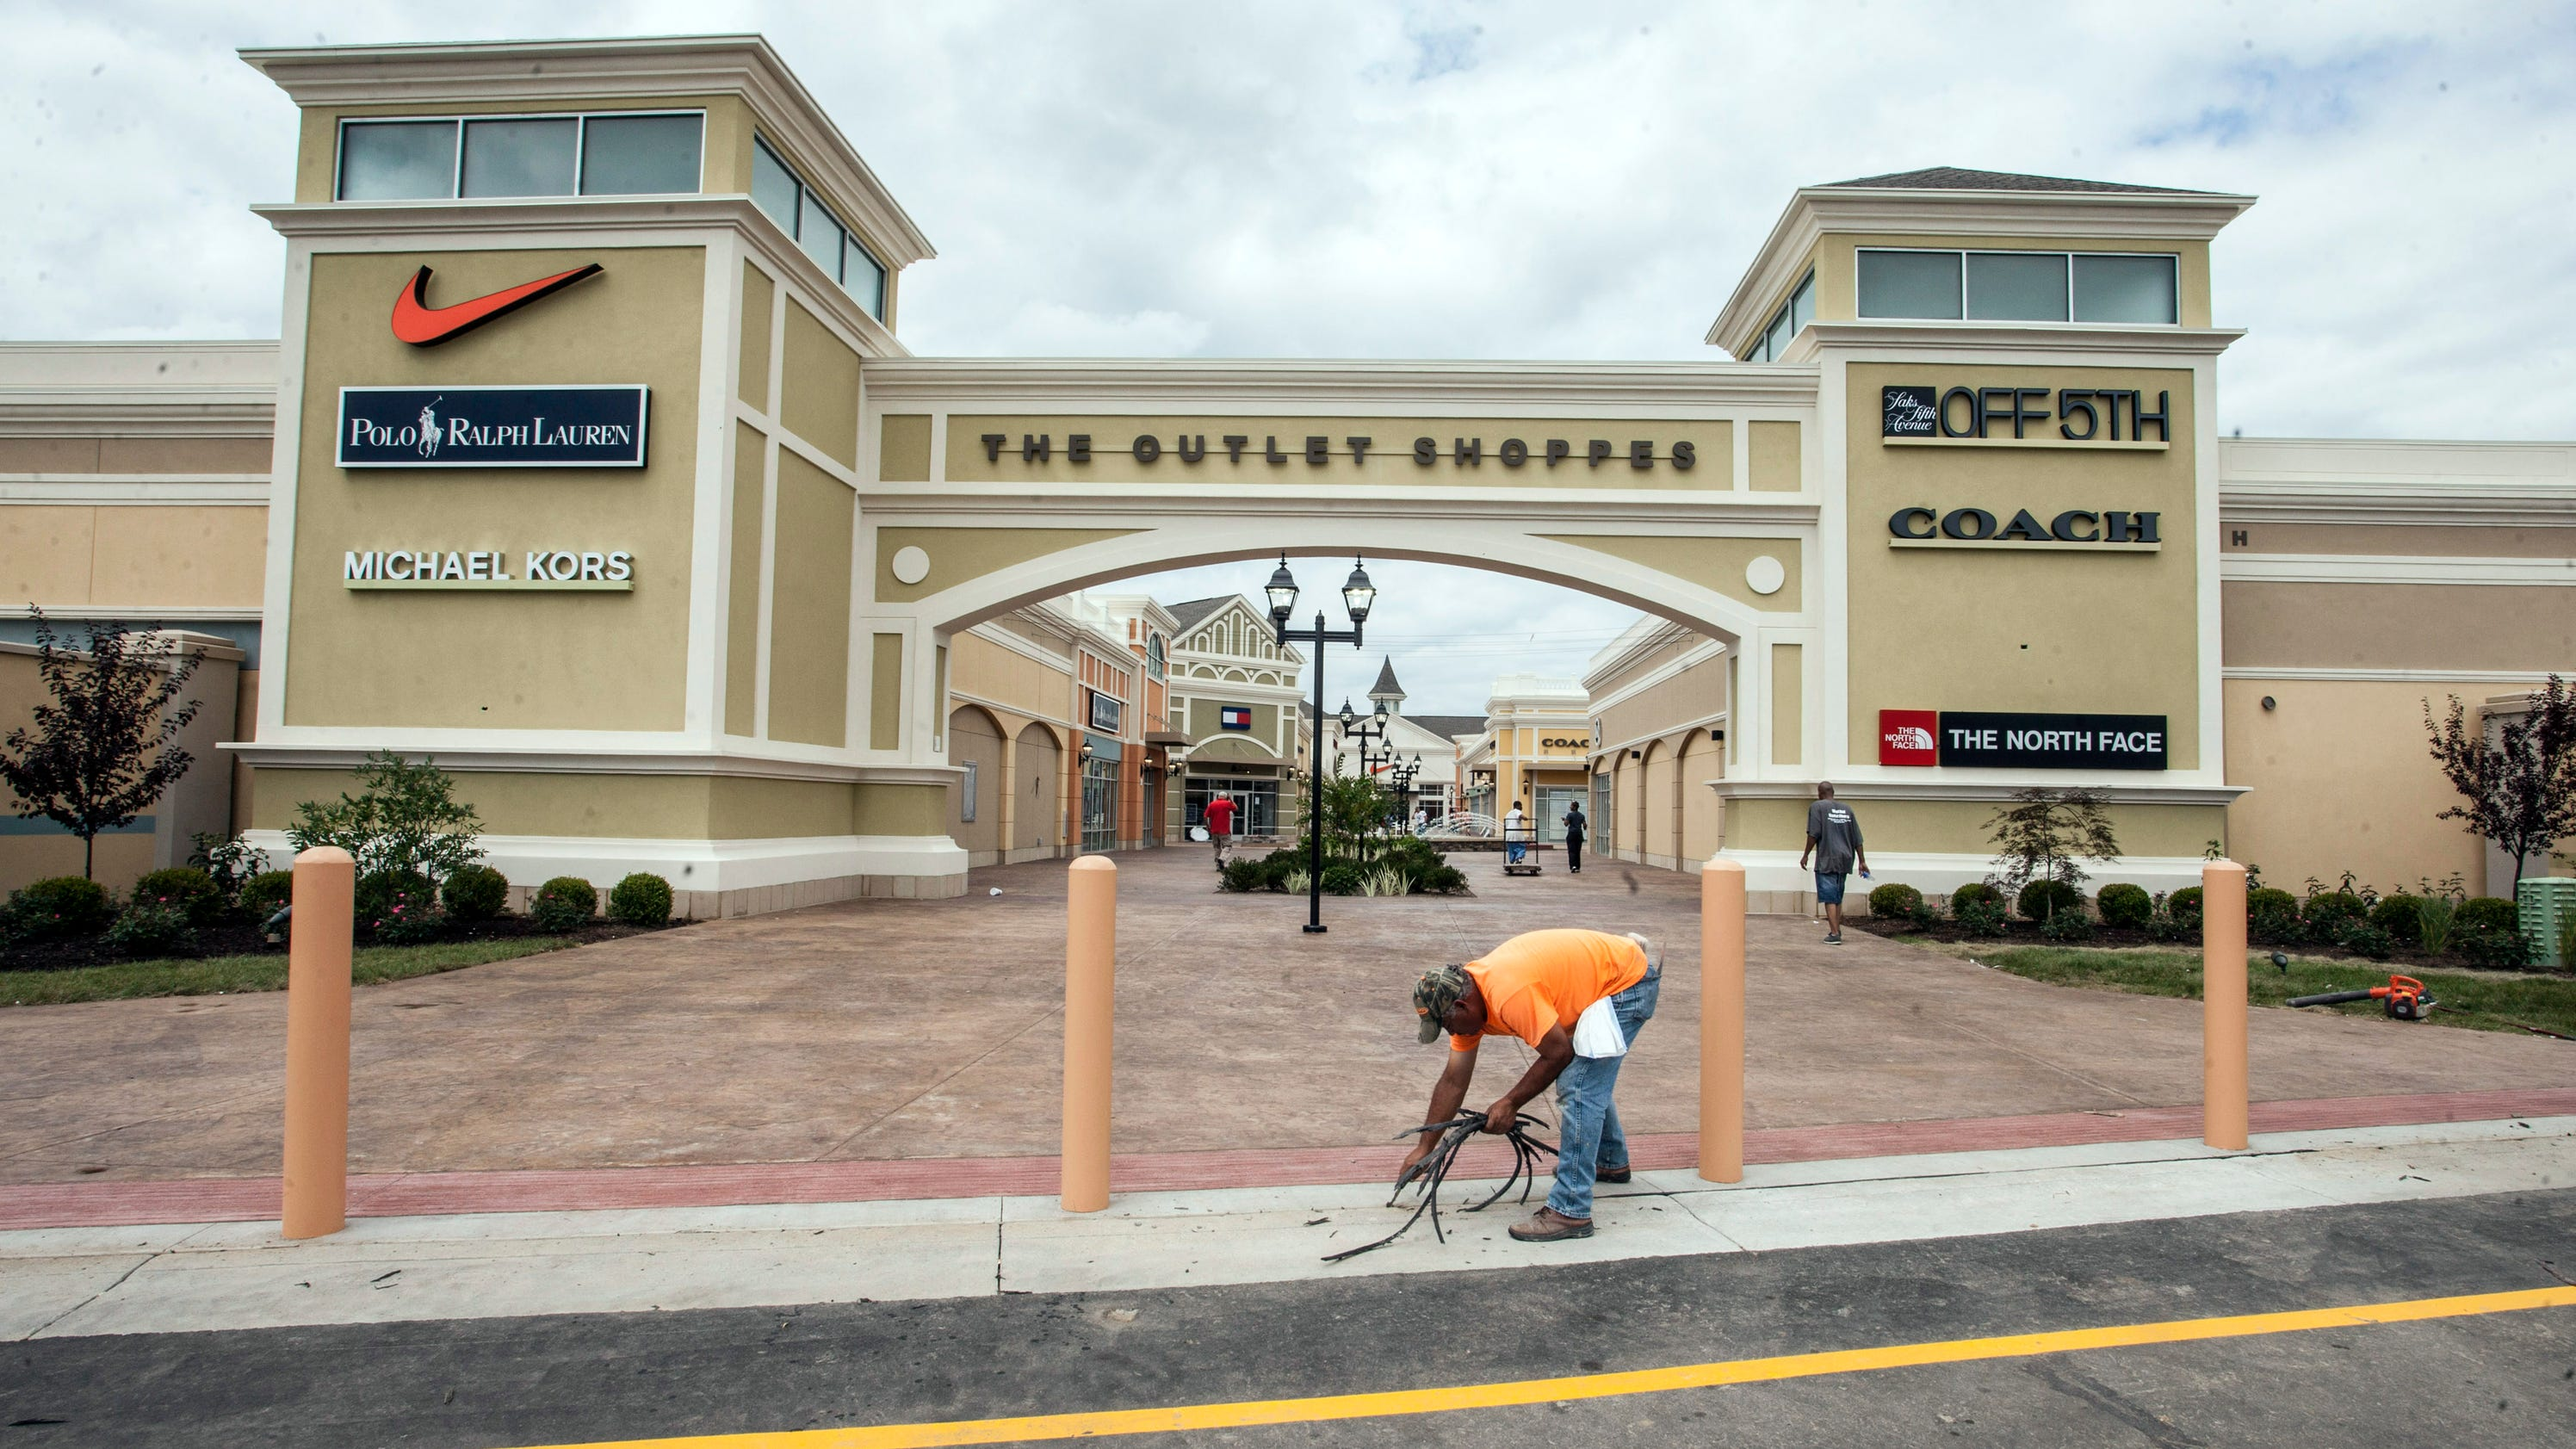 Shoppers eager for opening of Simpsonville outlet mall Thousands of shoppers expected at Shelby Co. outlet mall opening Job fair being held to fill 1, positions at new outlet mall.